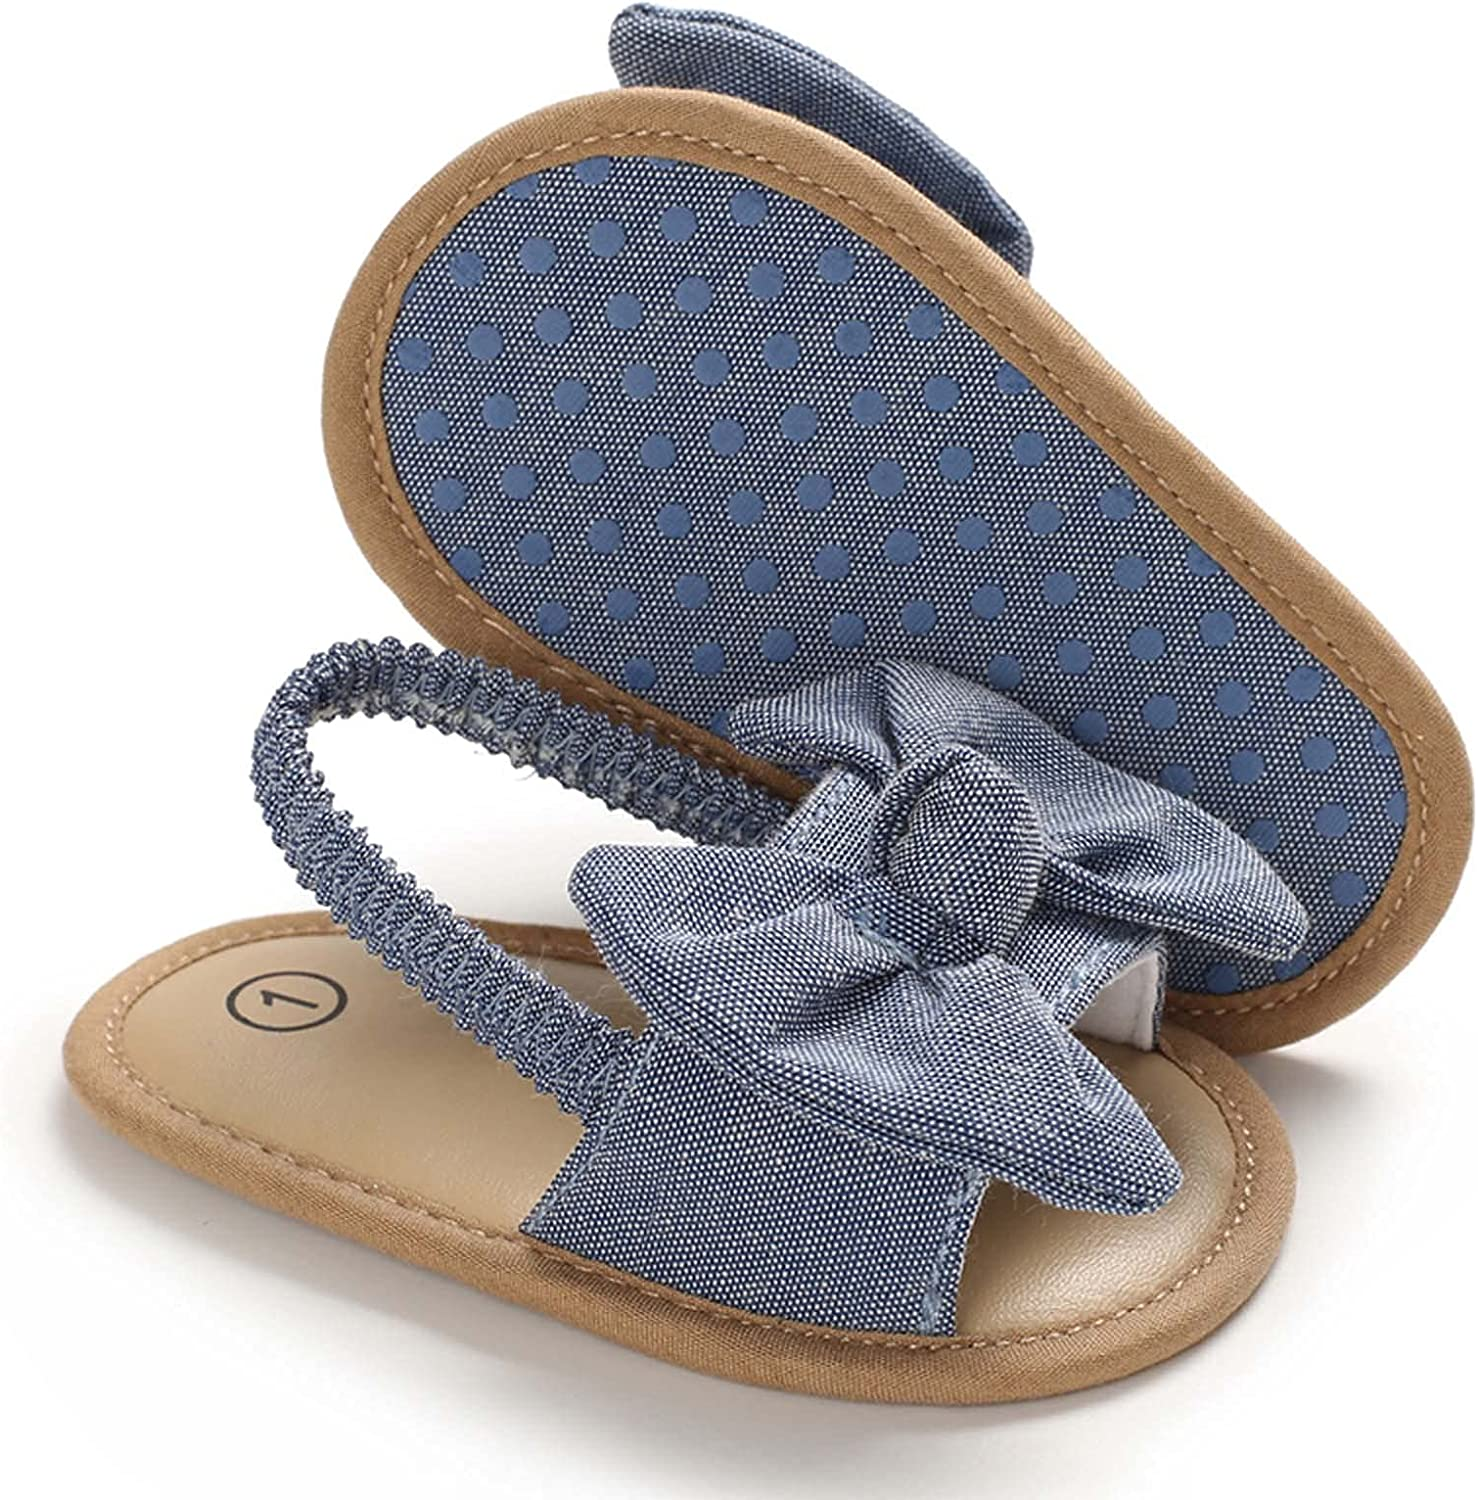 0-1 Years Old Baby Girls Bow Summer Knot Direct stock discount Sandals Cute Flat 5 popular Pri